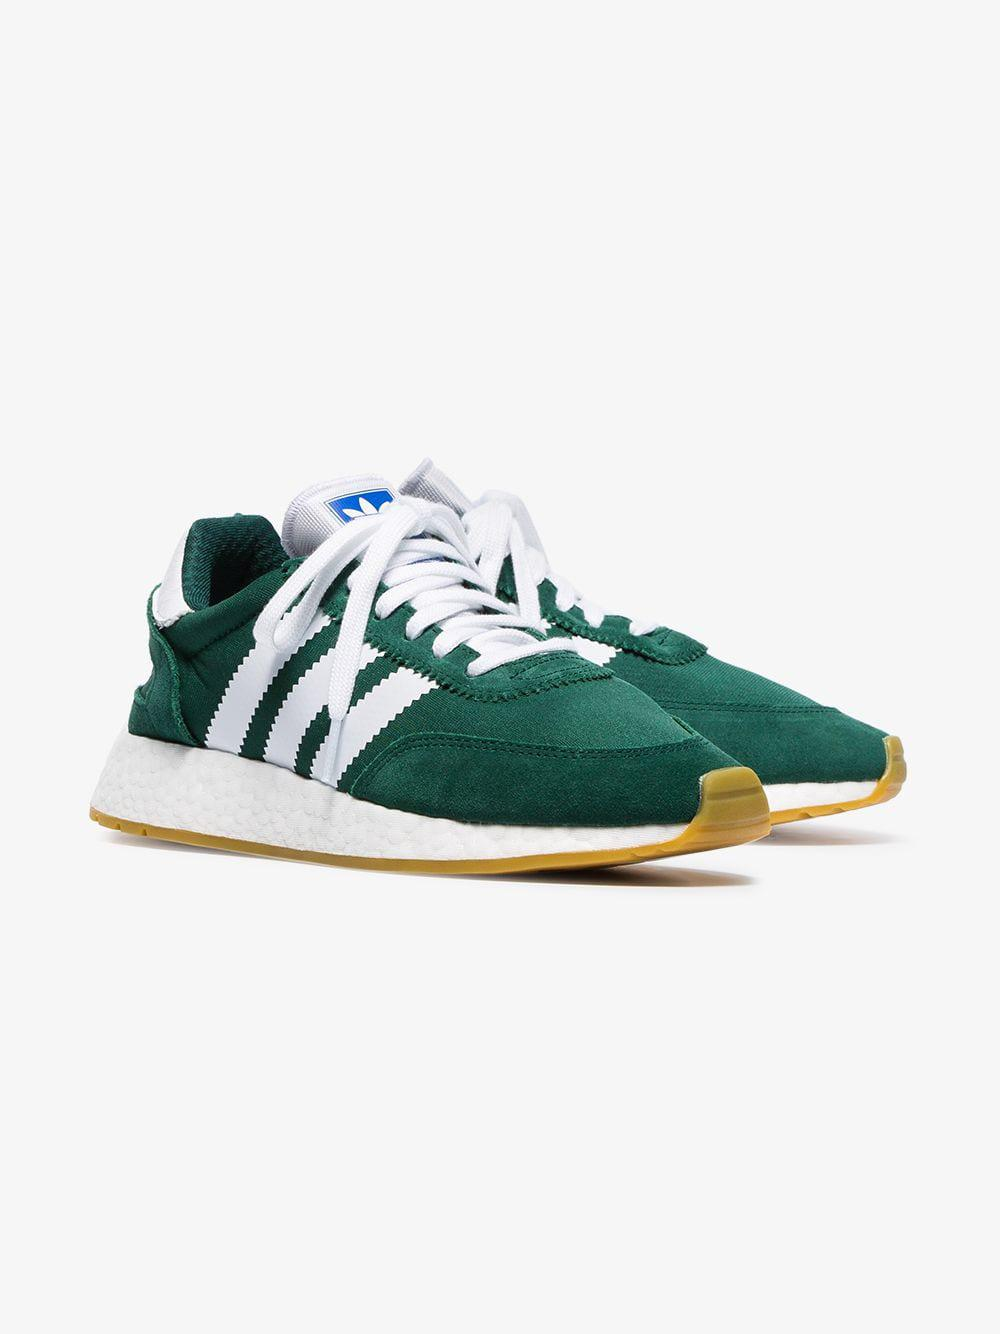 Green And White I-5923 Mesh And Suede Leather Sneakers